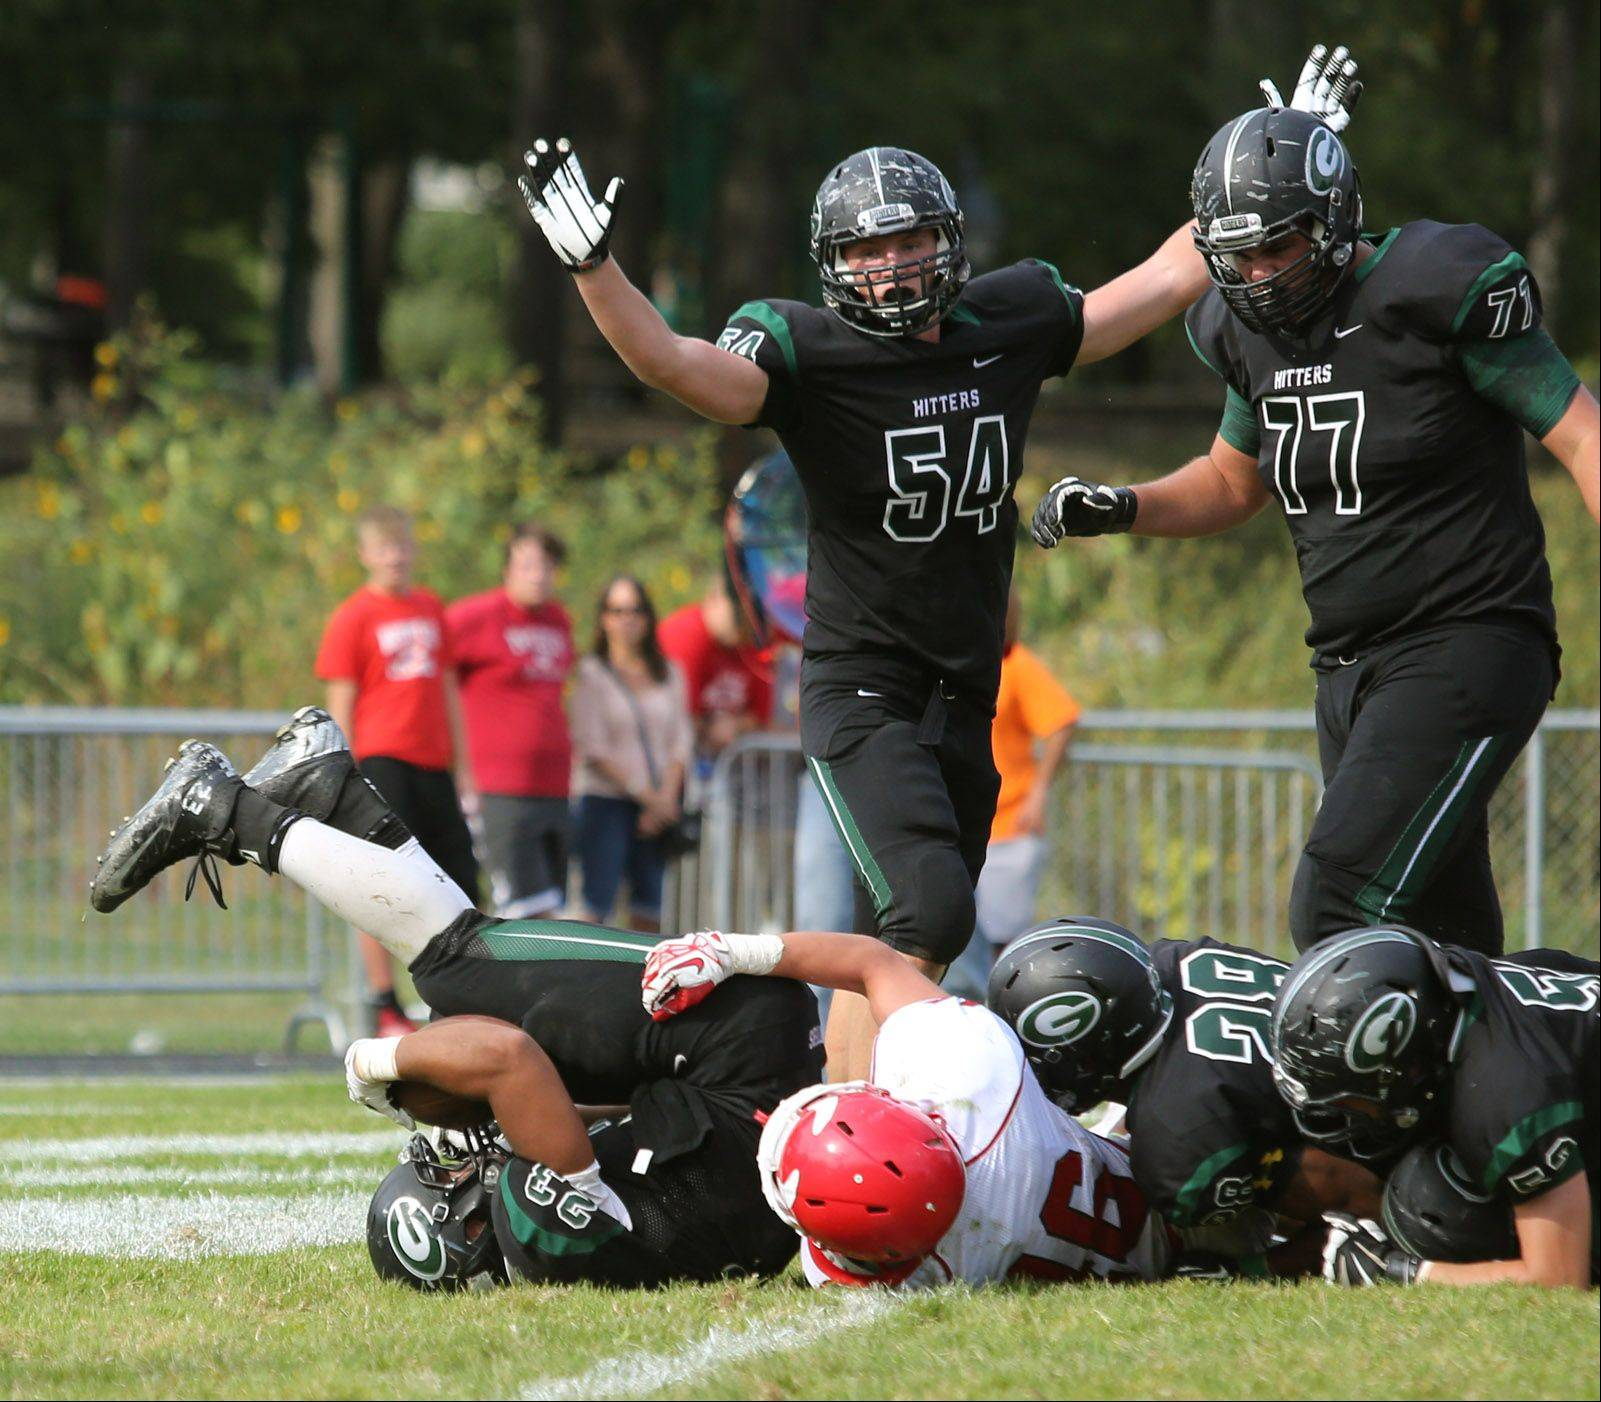 Glenbard West's Scott Andrews scores a second-half touchdown against Hinsdale Central as Tedd Clauss, (54) and Eric Shute (77) join the celebration.